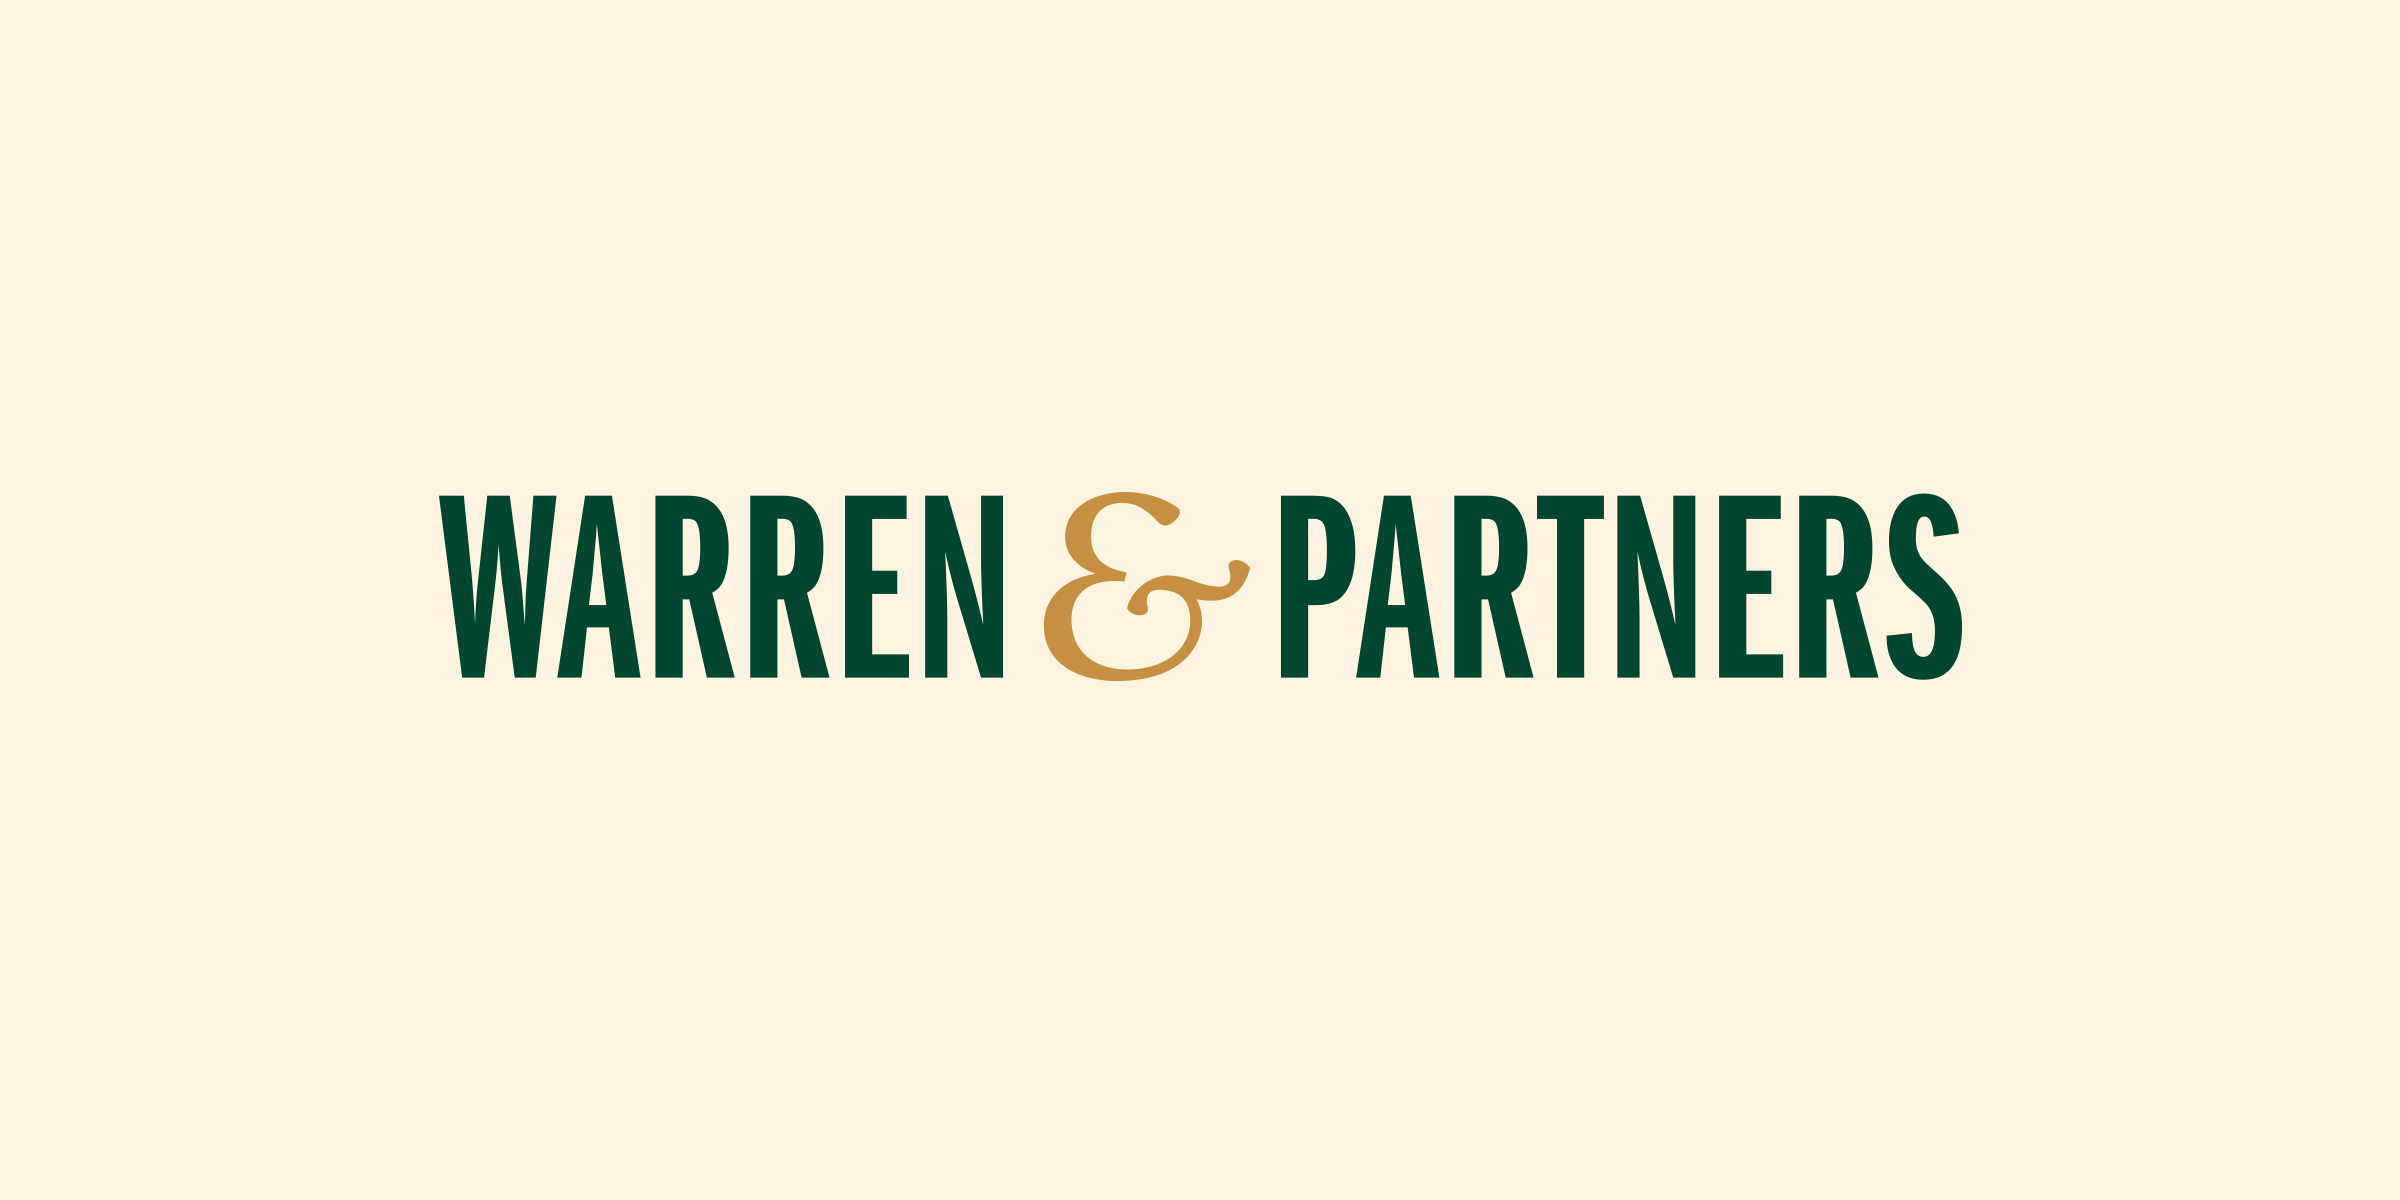 Identity and code for Warren & Partners